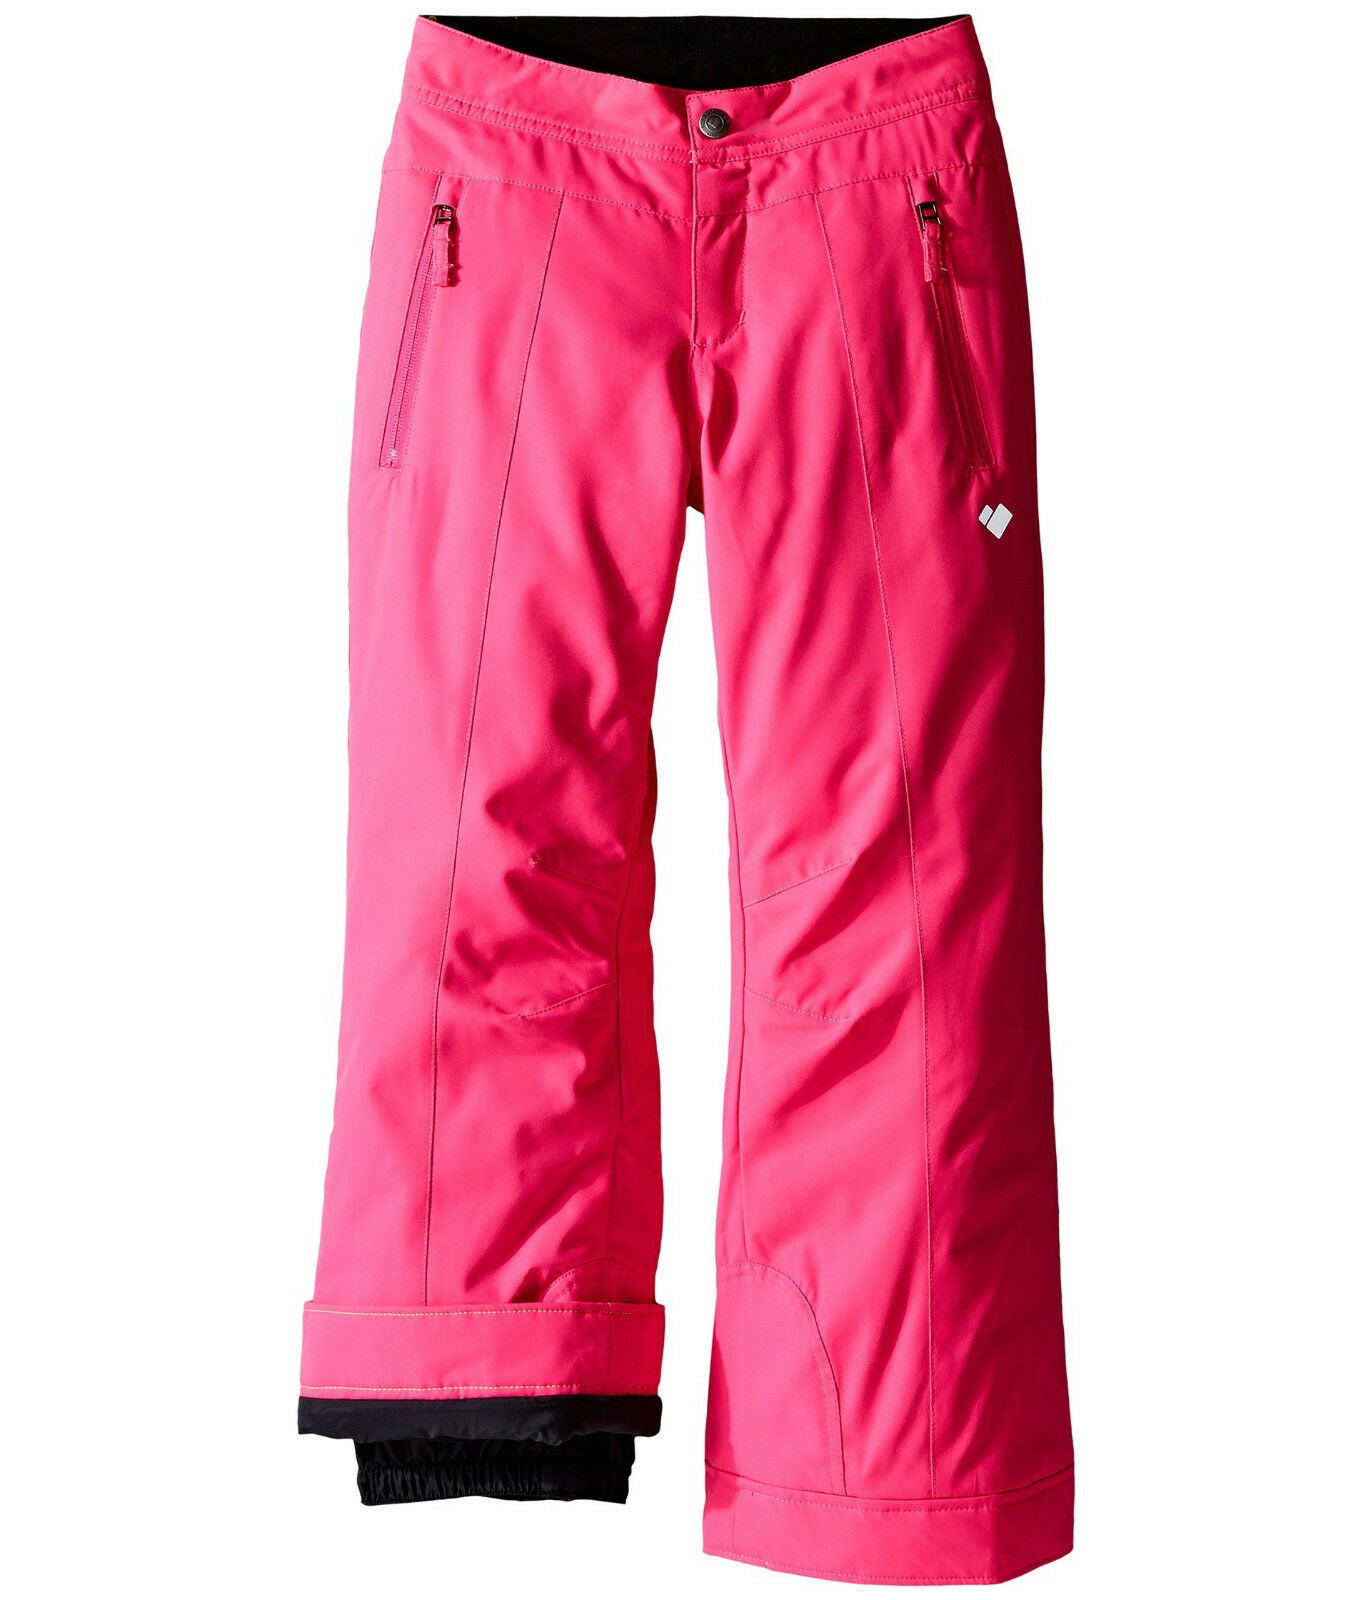 Obermeyer Girls Elsie Insulated Ski Snowboarding Pants, Snow Pant, Pant, Pant, Größe XL (18) f4b74d